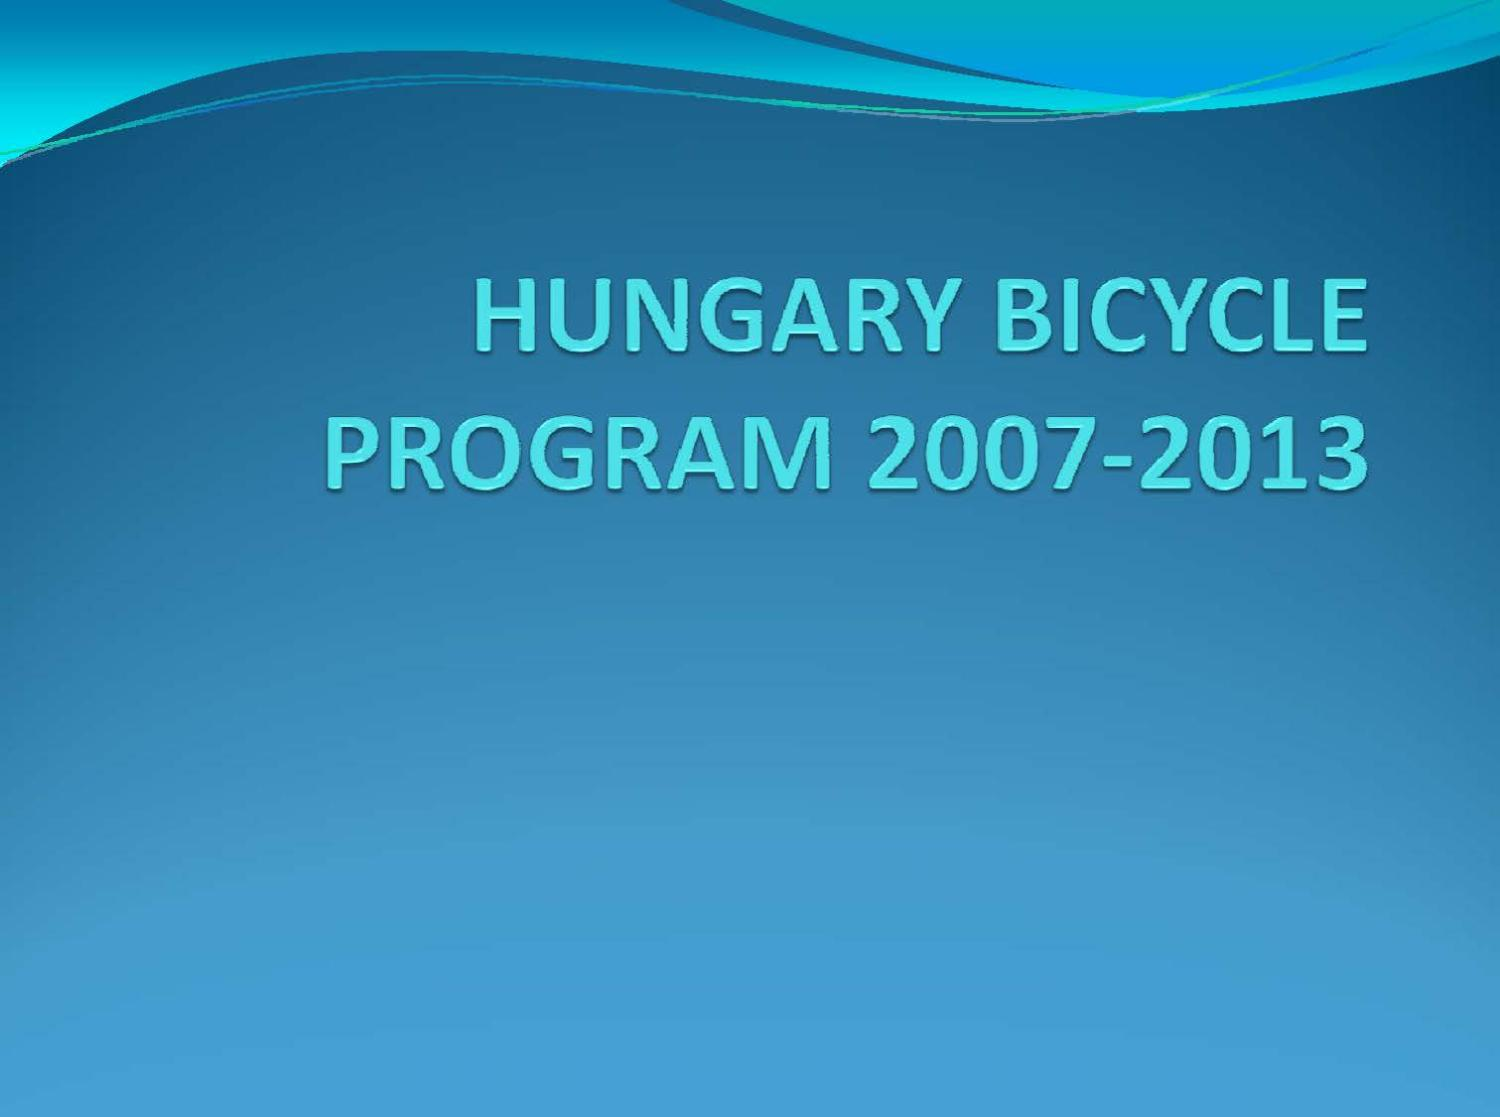 Hungary Bicycle Program 2007-2013                                                                                                      Title Page